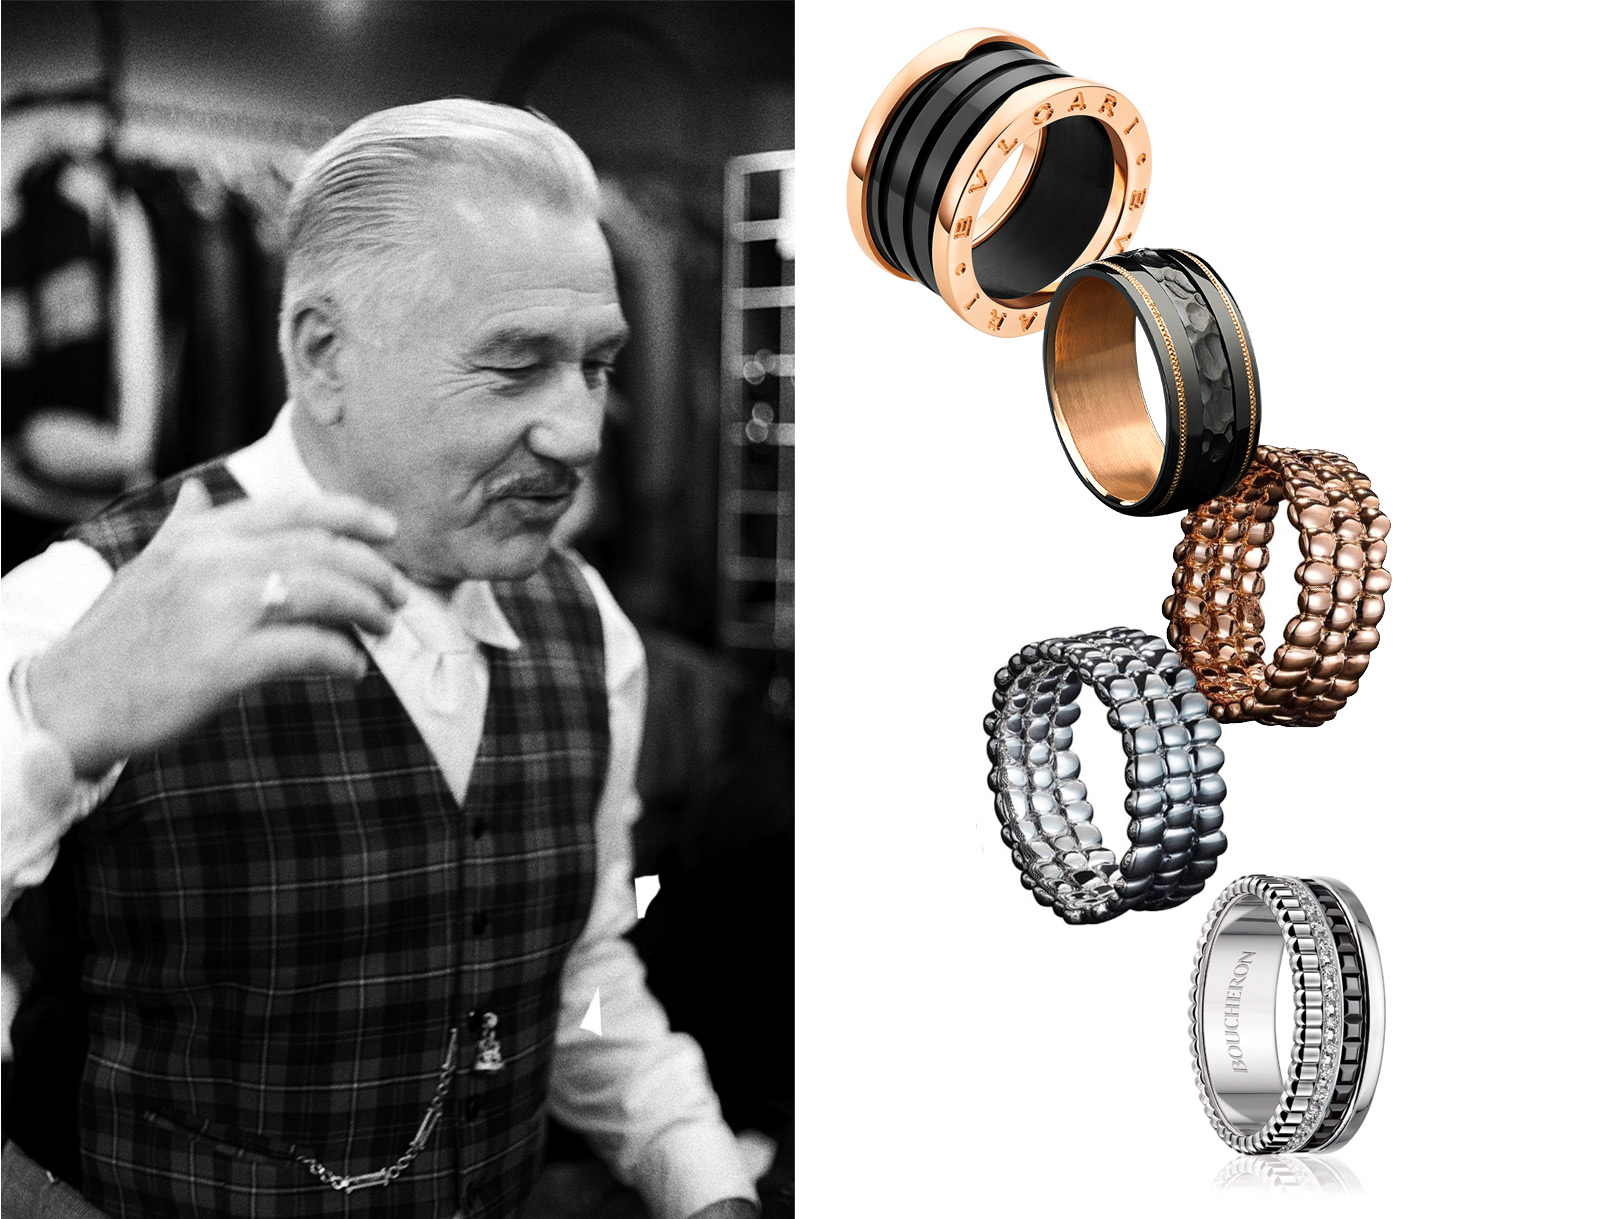 From top to bottom: Bulgari B. Zero men's ring, Zoltan David knightsteel ring, Julien Riad Sahyoun rings in rose gold and white gold, and Boucheron Quatre stack ring with diamonds. Photo on the left by Ross Trevail from the Tomfoolery series